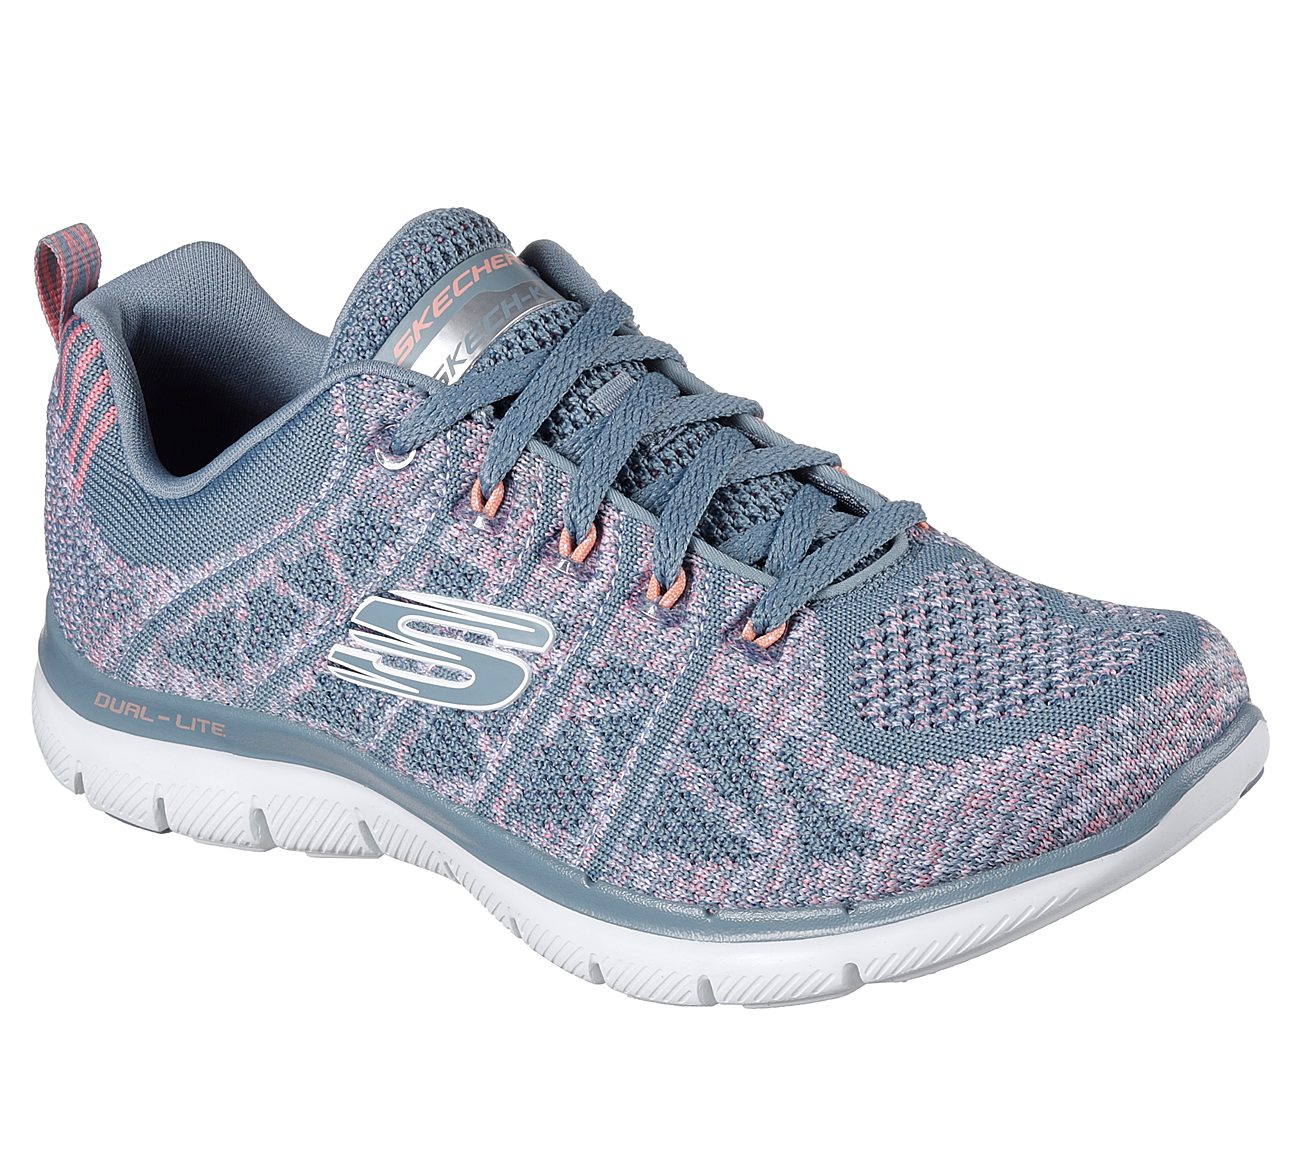 Details about Skechers Women's Fitness Leisure Shoes Flex Appeal 2.0